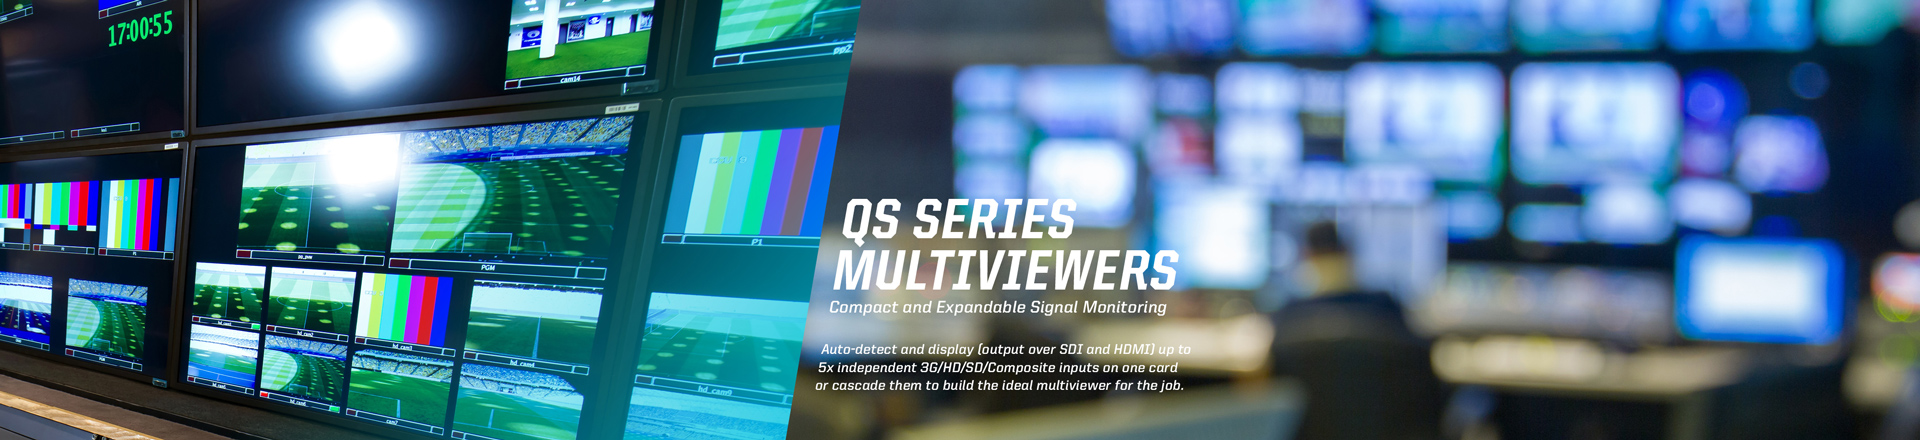 QS Series Multiviewers